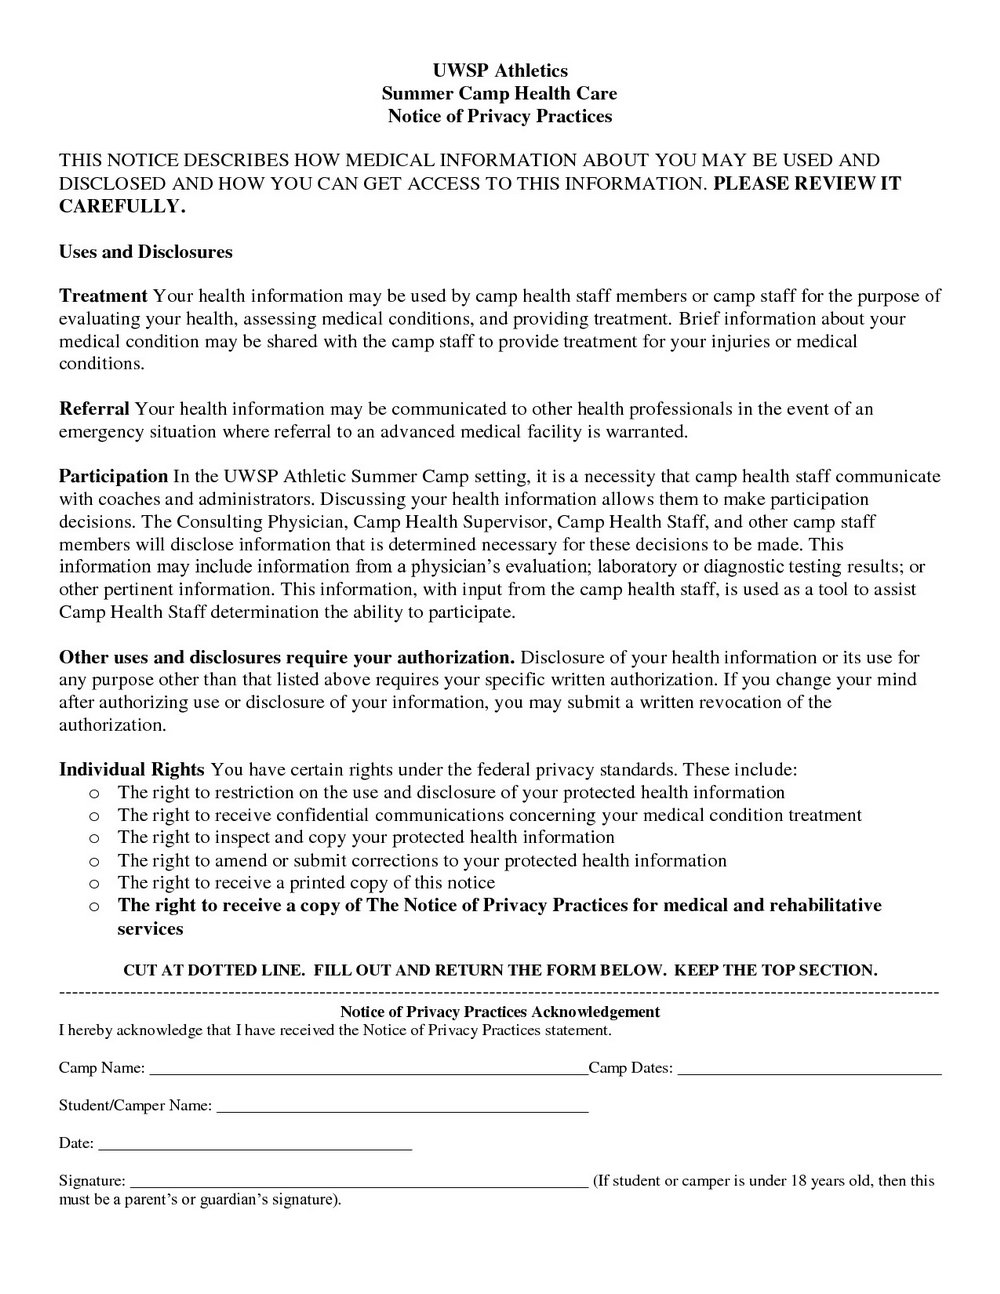 Hipaa Notice Of Privacy Practices Form Pdf